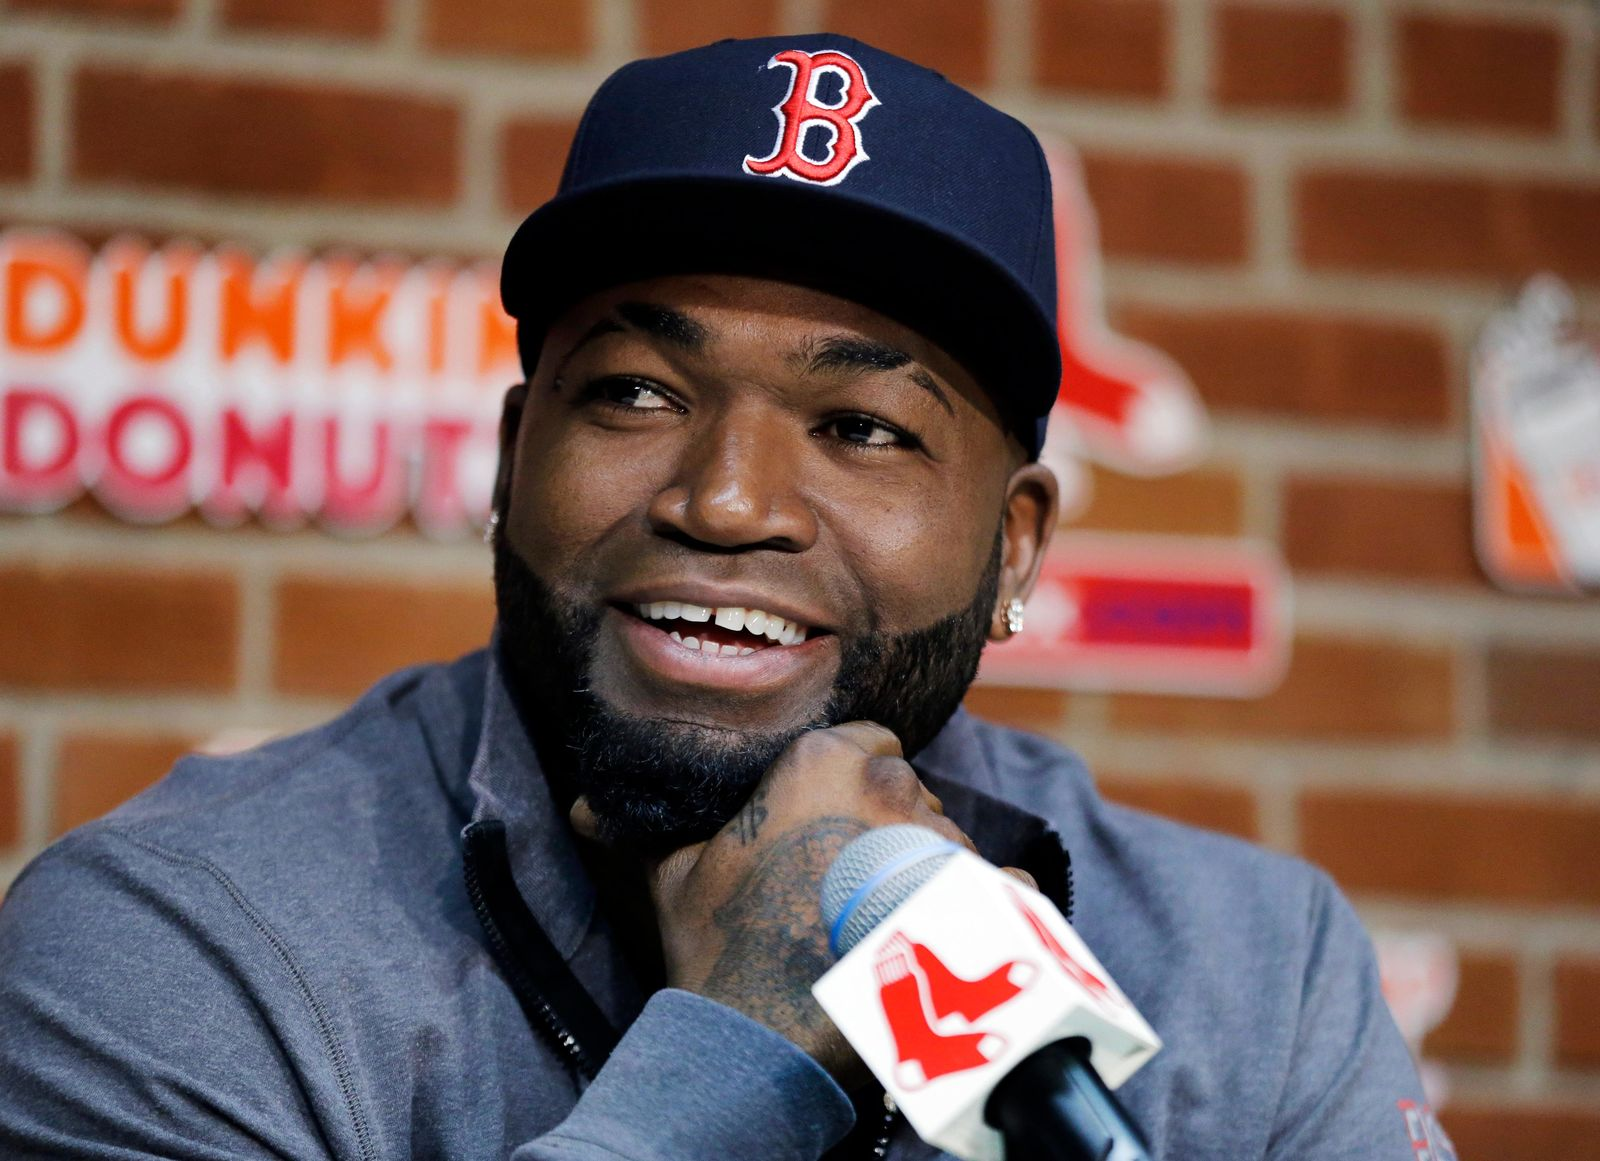 FILE - In this Sept. 30, 2016, file photo, Boston Red Sox's David Ortiz speaks during a news conference before a baseball game against the Toronto Blue Jays at Fenway Park, in Boston.{ } (AP Photo/Elise Amendola, File)